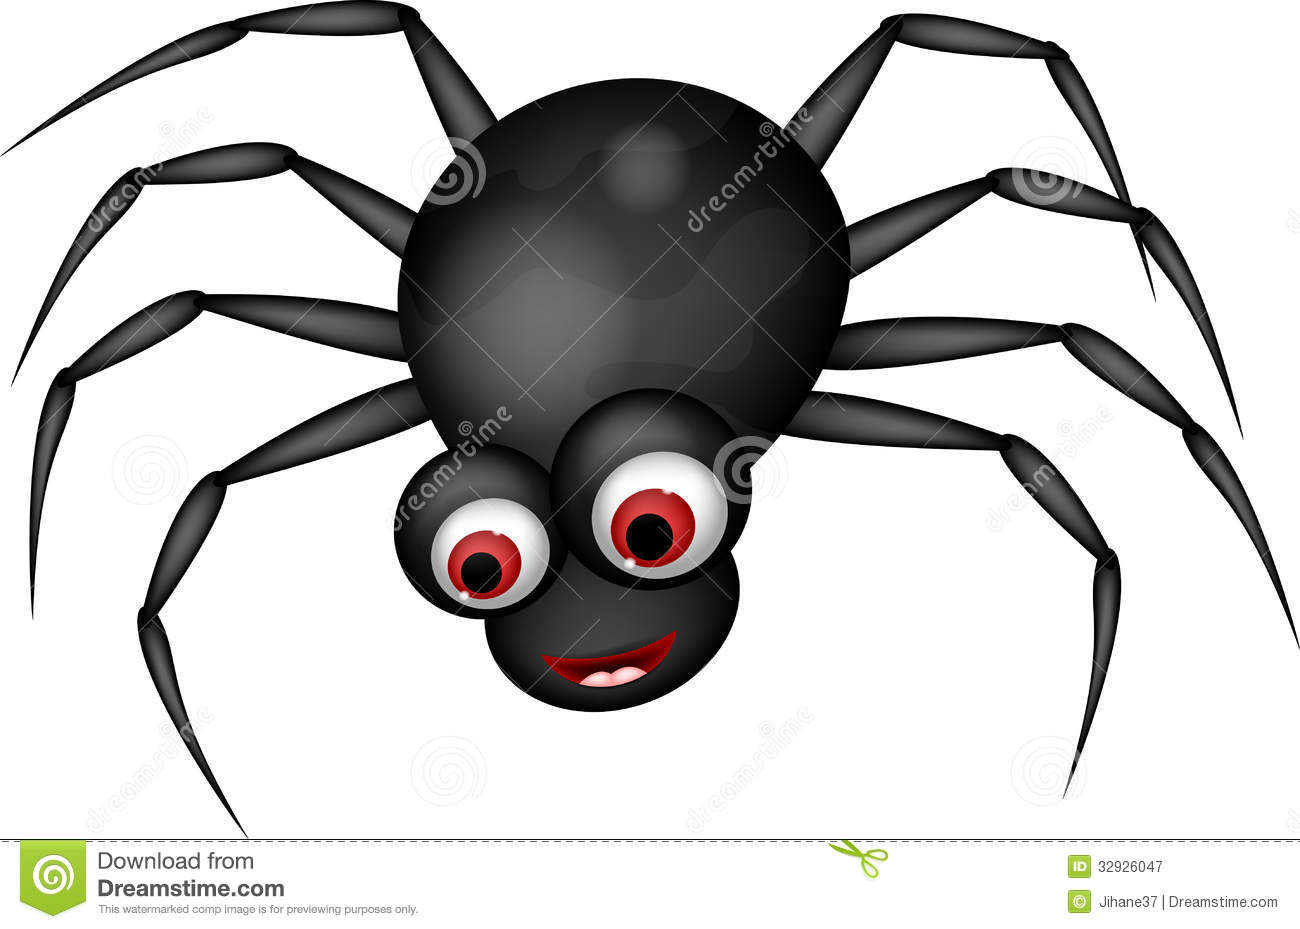 spider cartoon images - usseek.com